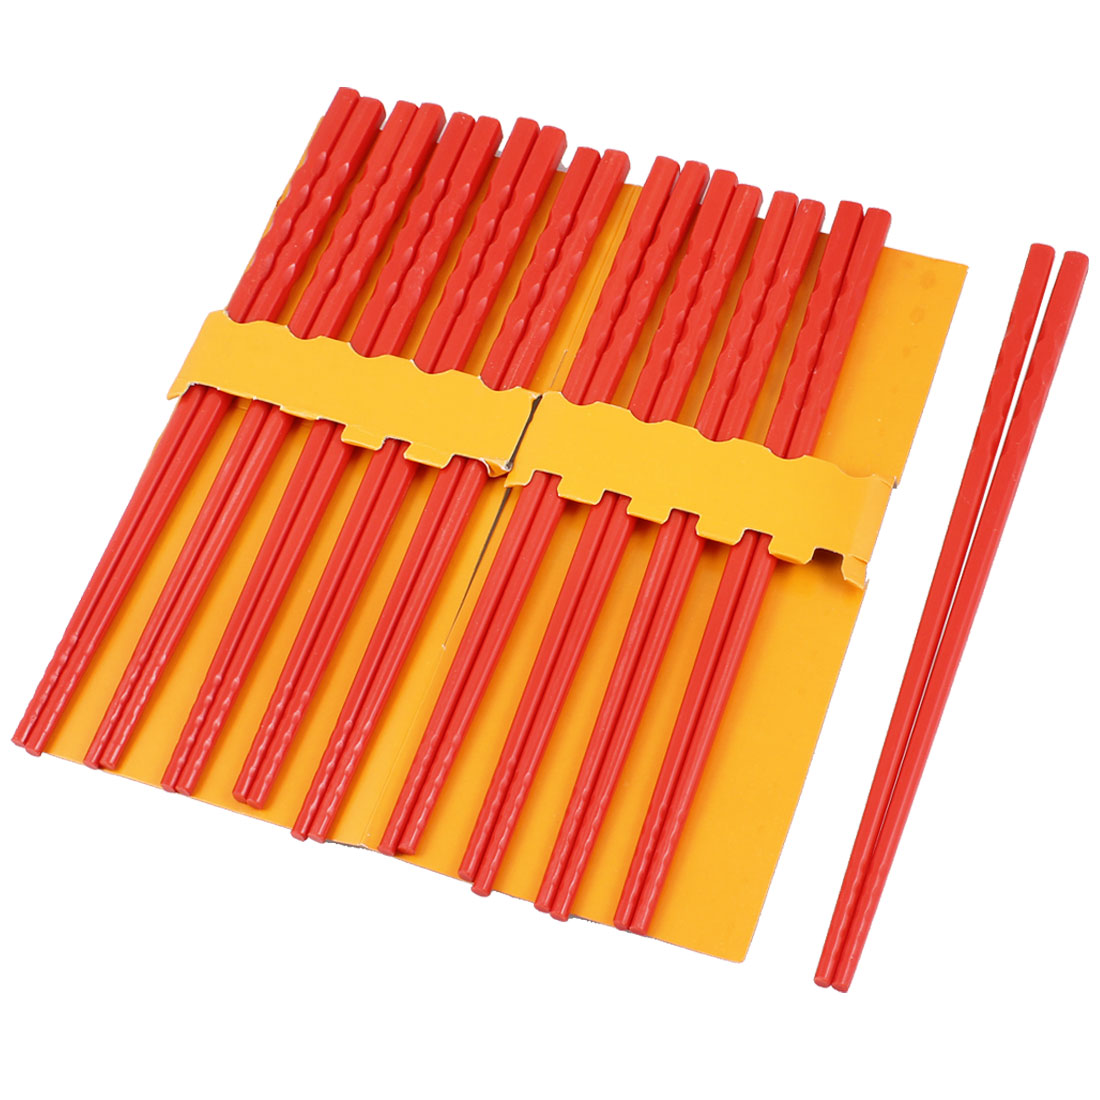 10 Pairs Kitchen Dishware Nonslip Plastic Chopsticks Red